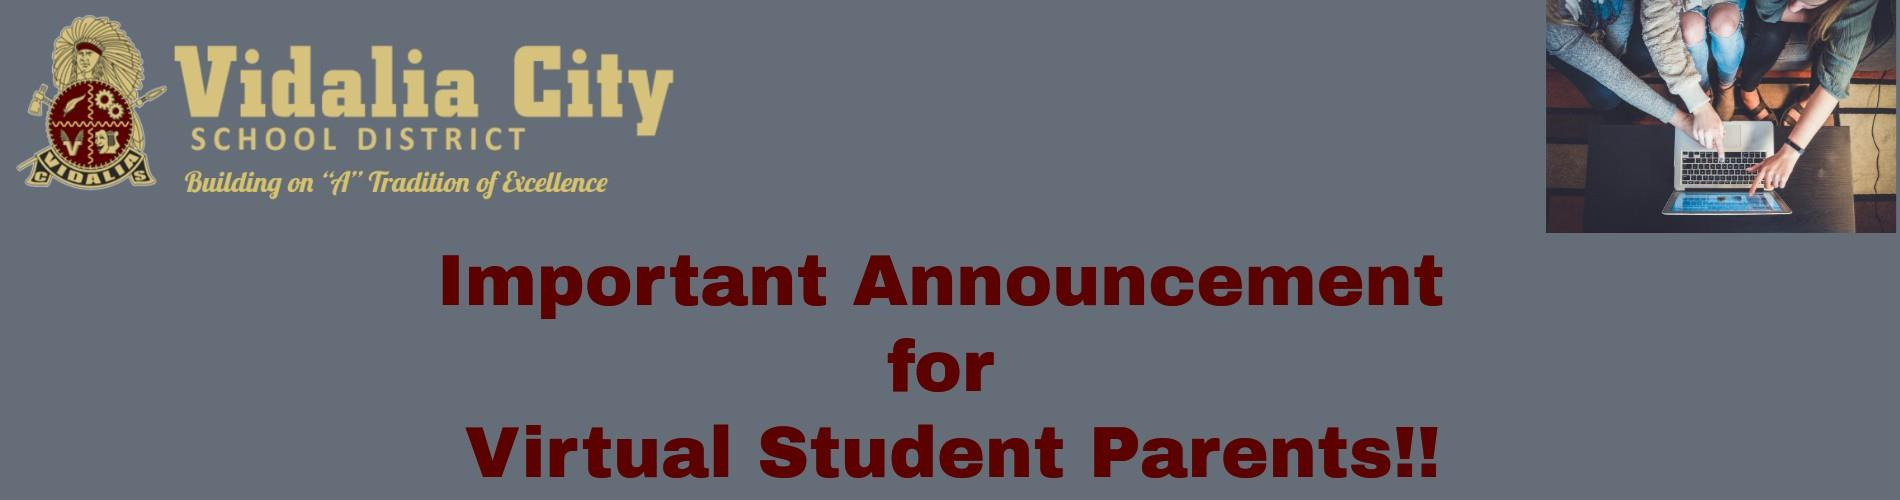 Announcement Concerning Virtual Students